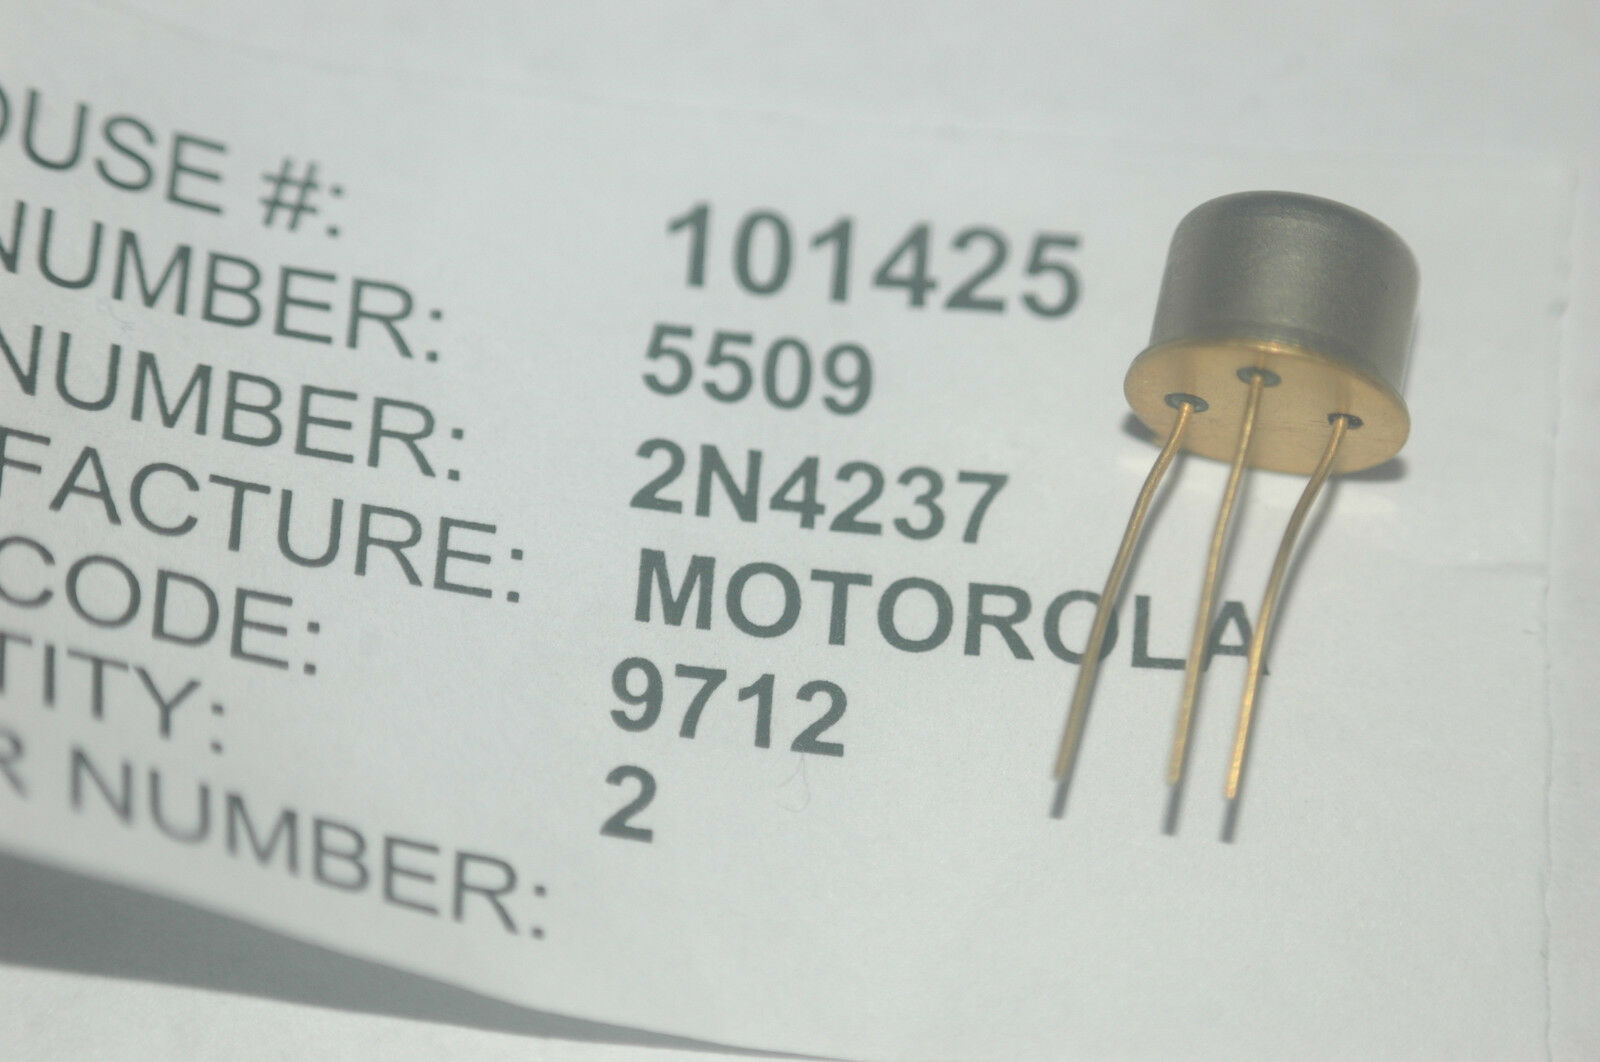 Motorola 2n4237 Bipolar Junction Transistor Npn Type To 5 New Lot Kinds Of Transistors Are I Ii Pnp Quantity 2 1 1only Available See More